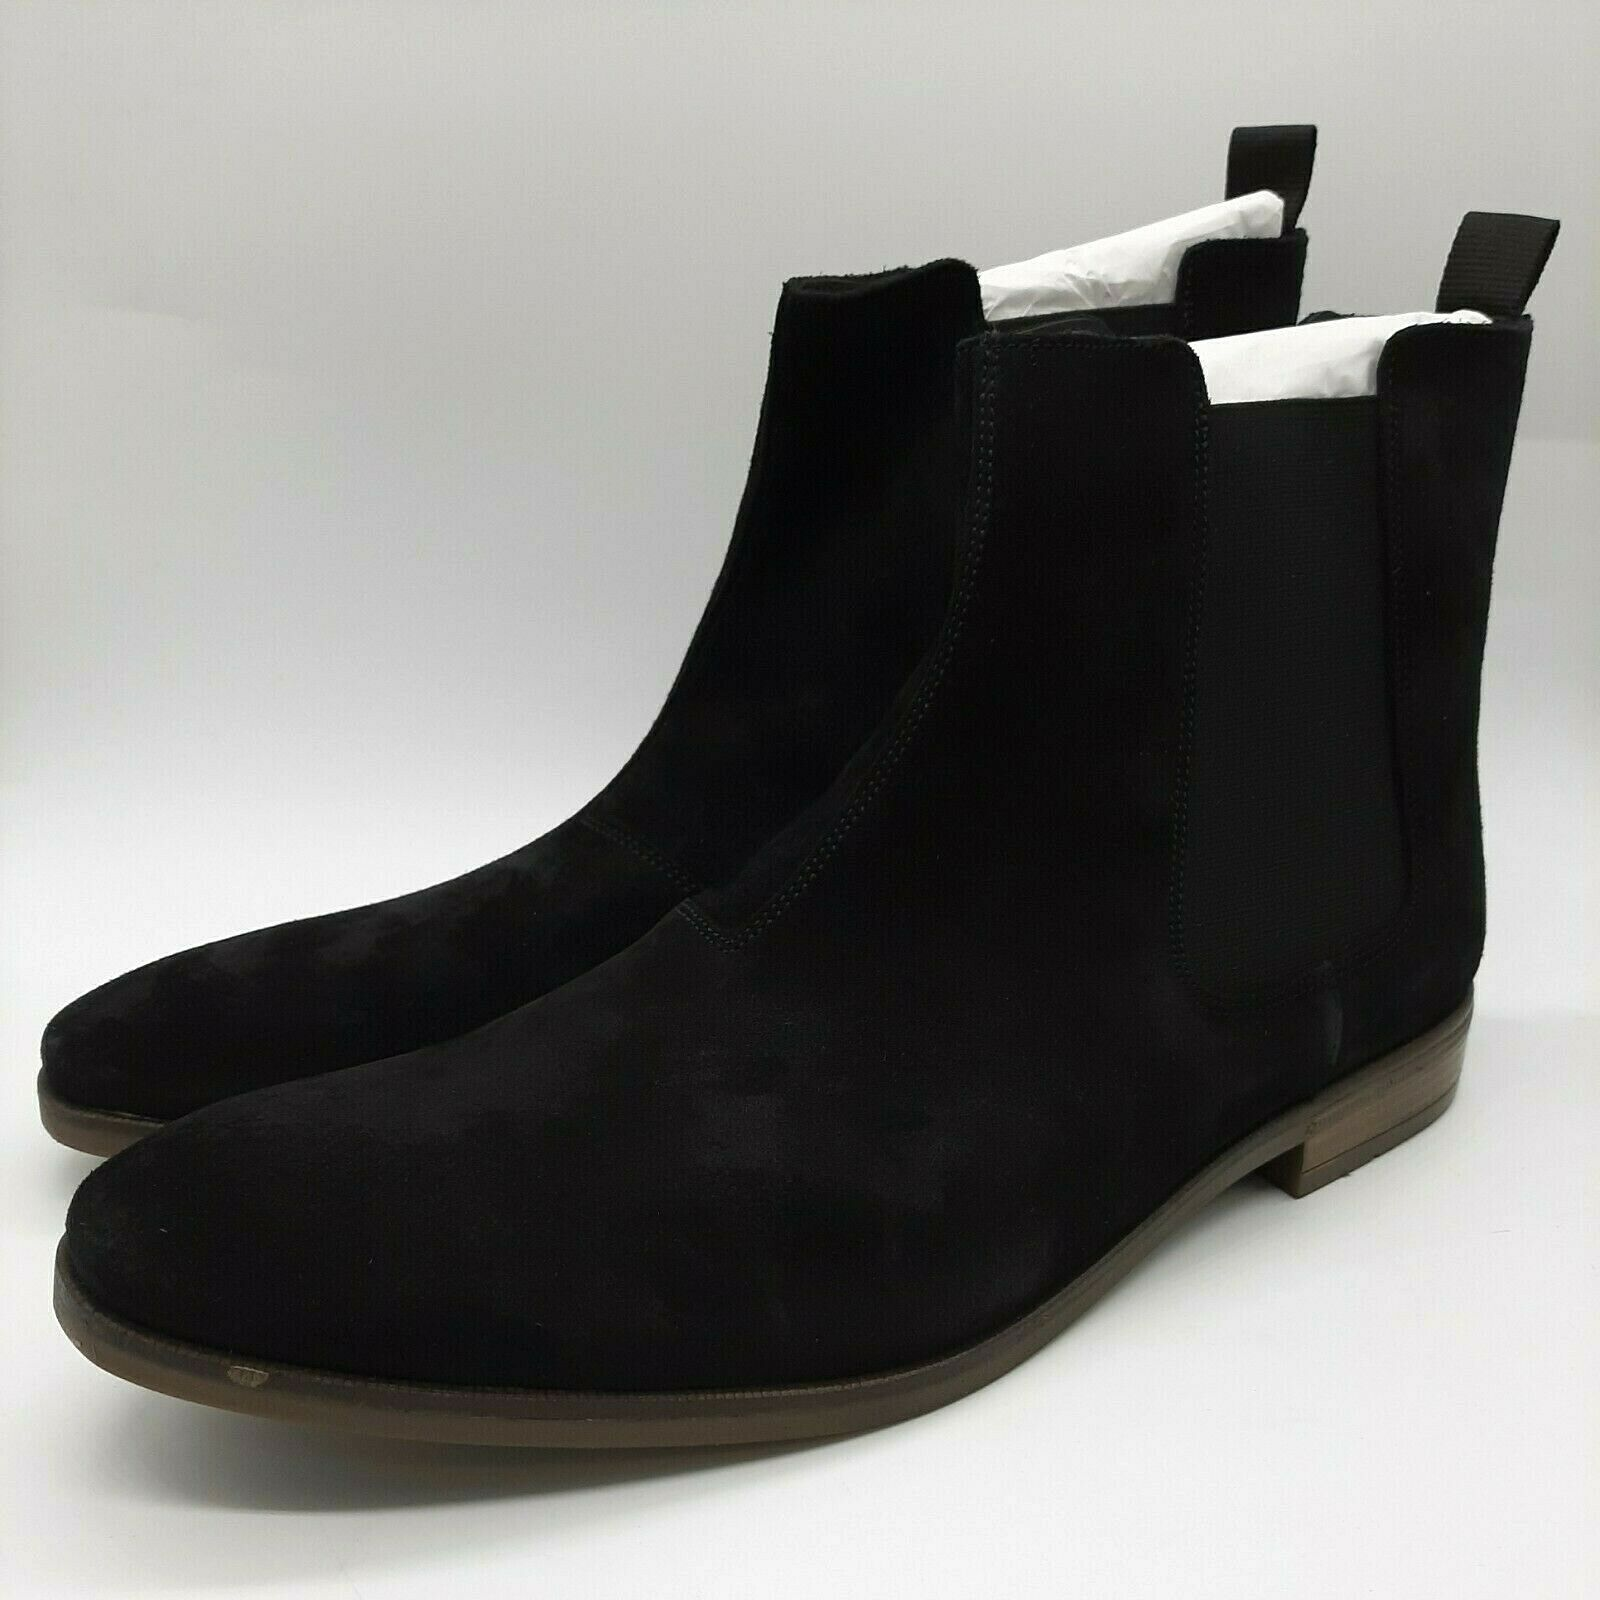 Clarks Men Black Suede Stanford Top Boots Size UK 10 Smart Office Casual RRP